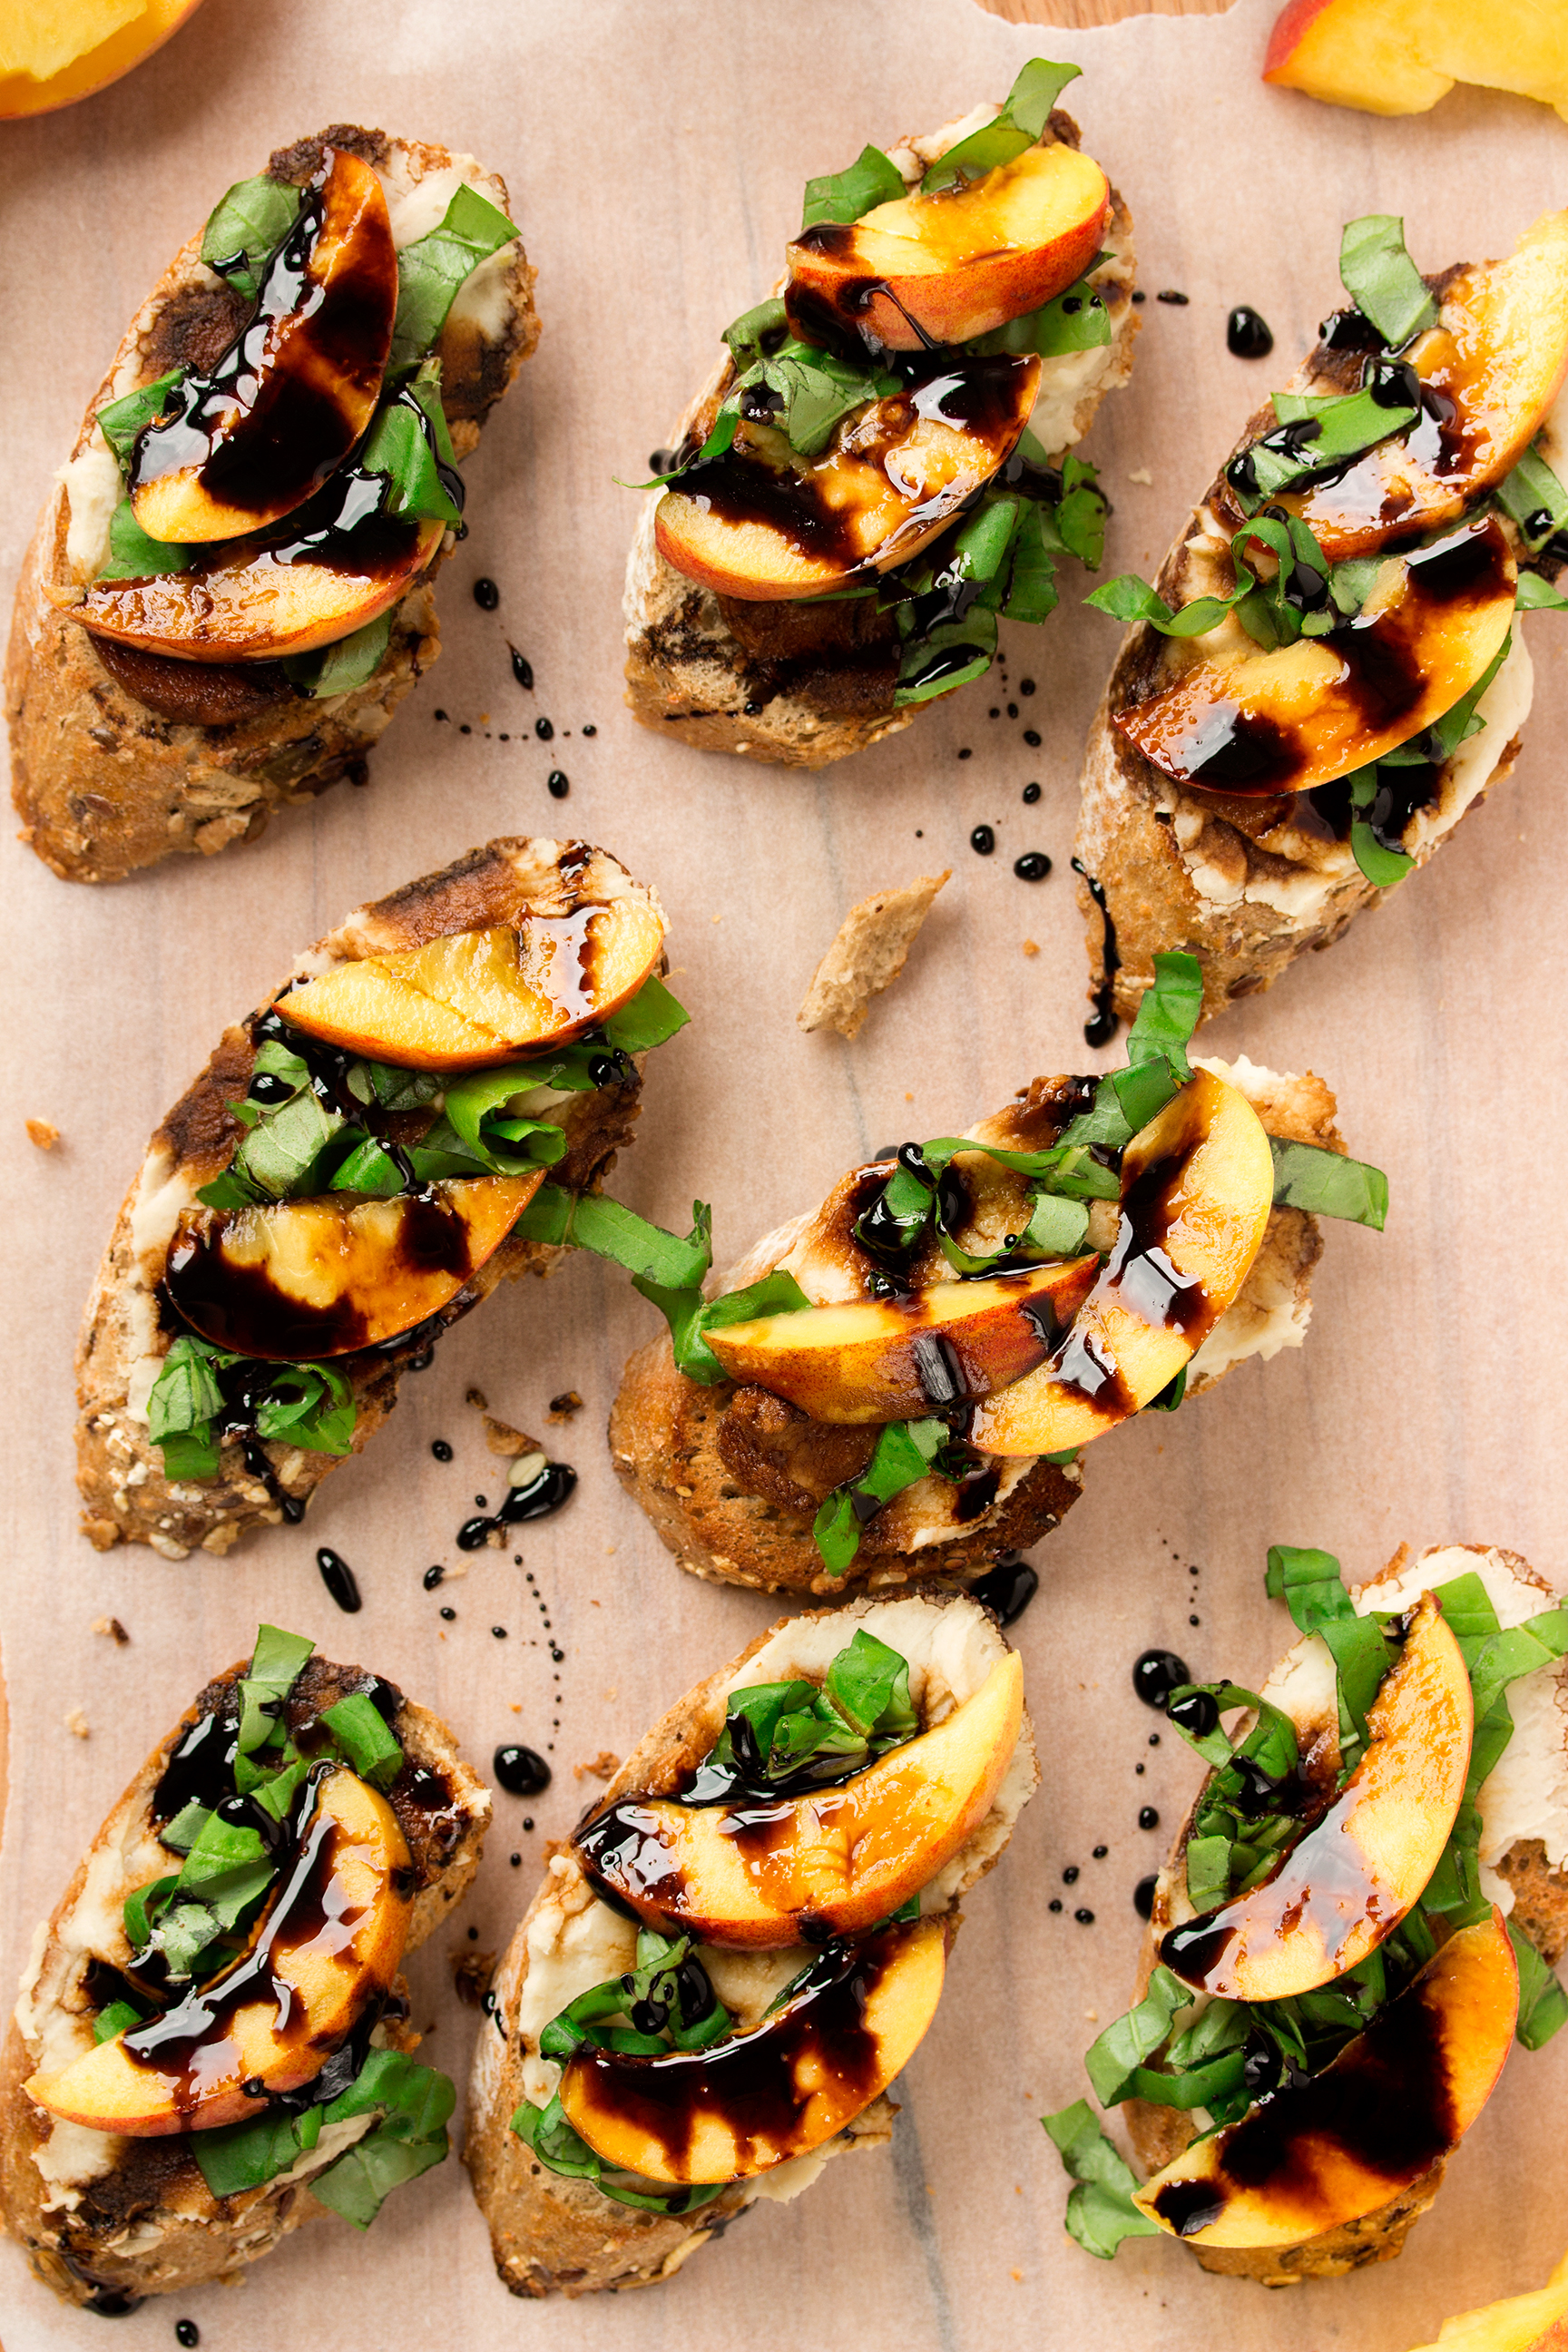 BRUSCHETTA vegan con PESCE, ACETO BALSAMICO, BASILICO e CREMA di FAGIOLI // Assolutamente DIVINE! | ITALIAN VEGAN BRUSCHETTA with PEACHES, BALSAMIC VINEGAR, white beans and basil. The perfect FINGER FOOD that will make everyone happy // vegan #glutenfree